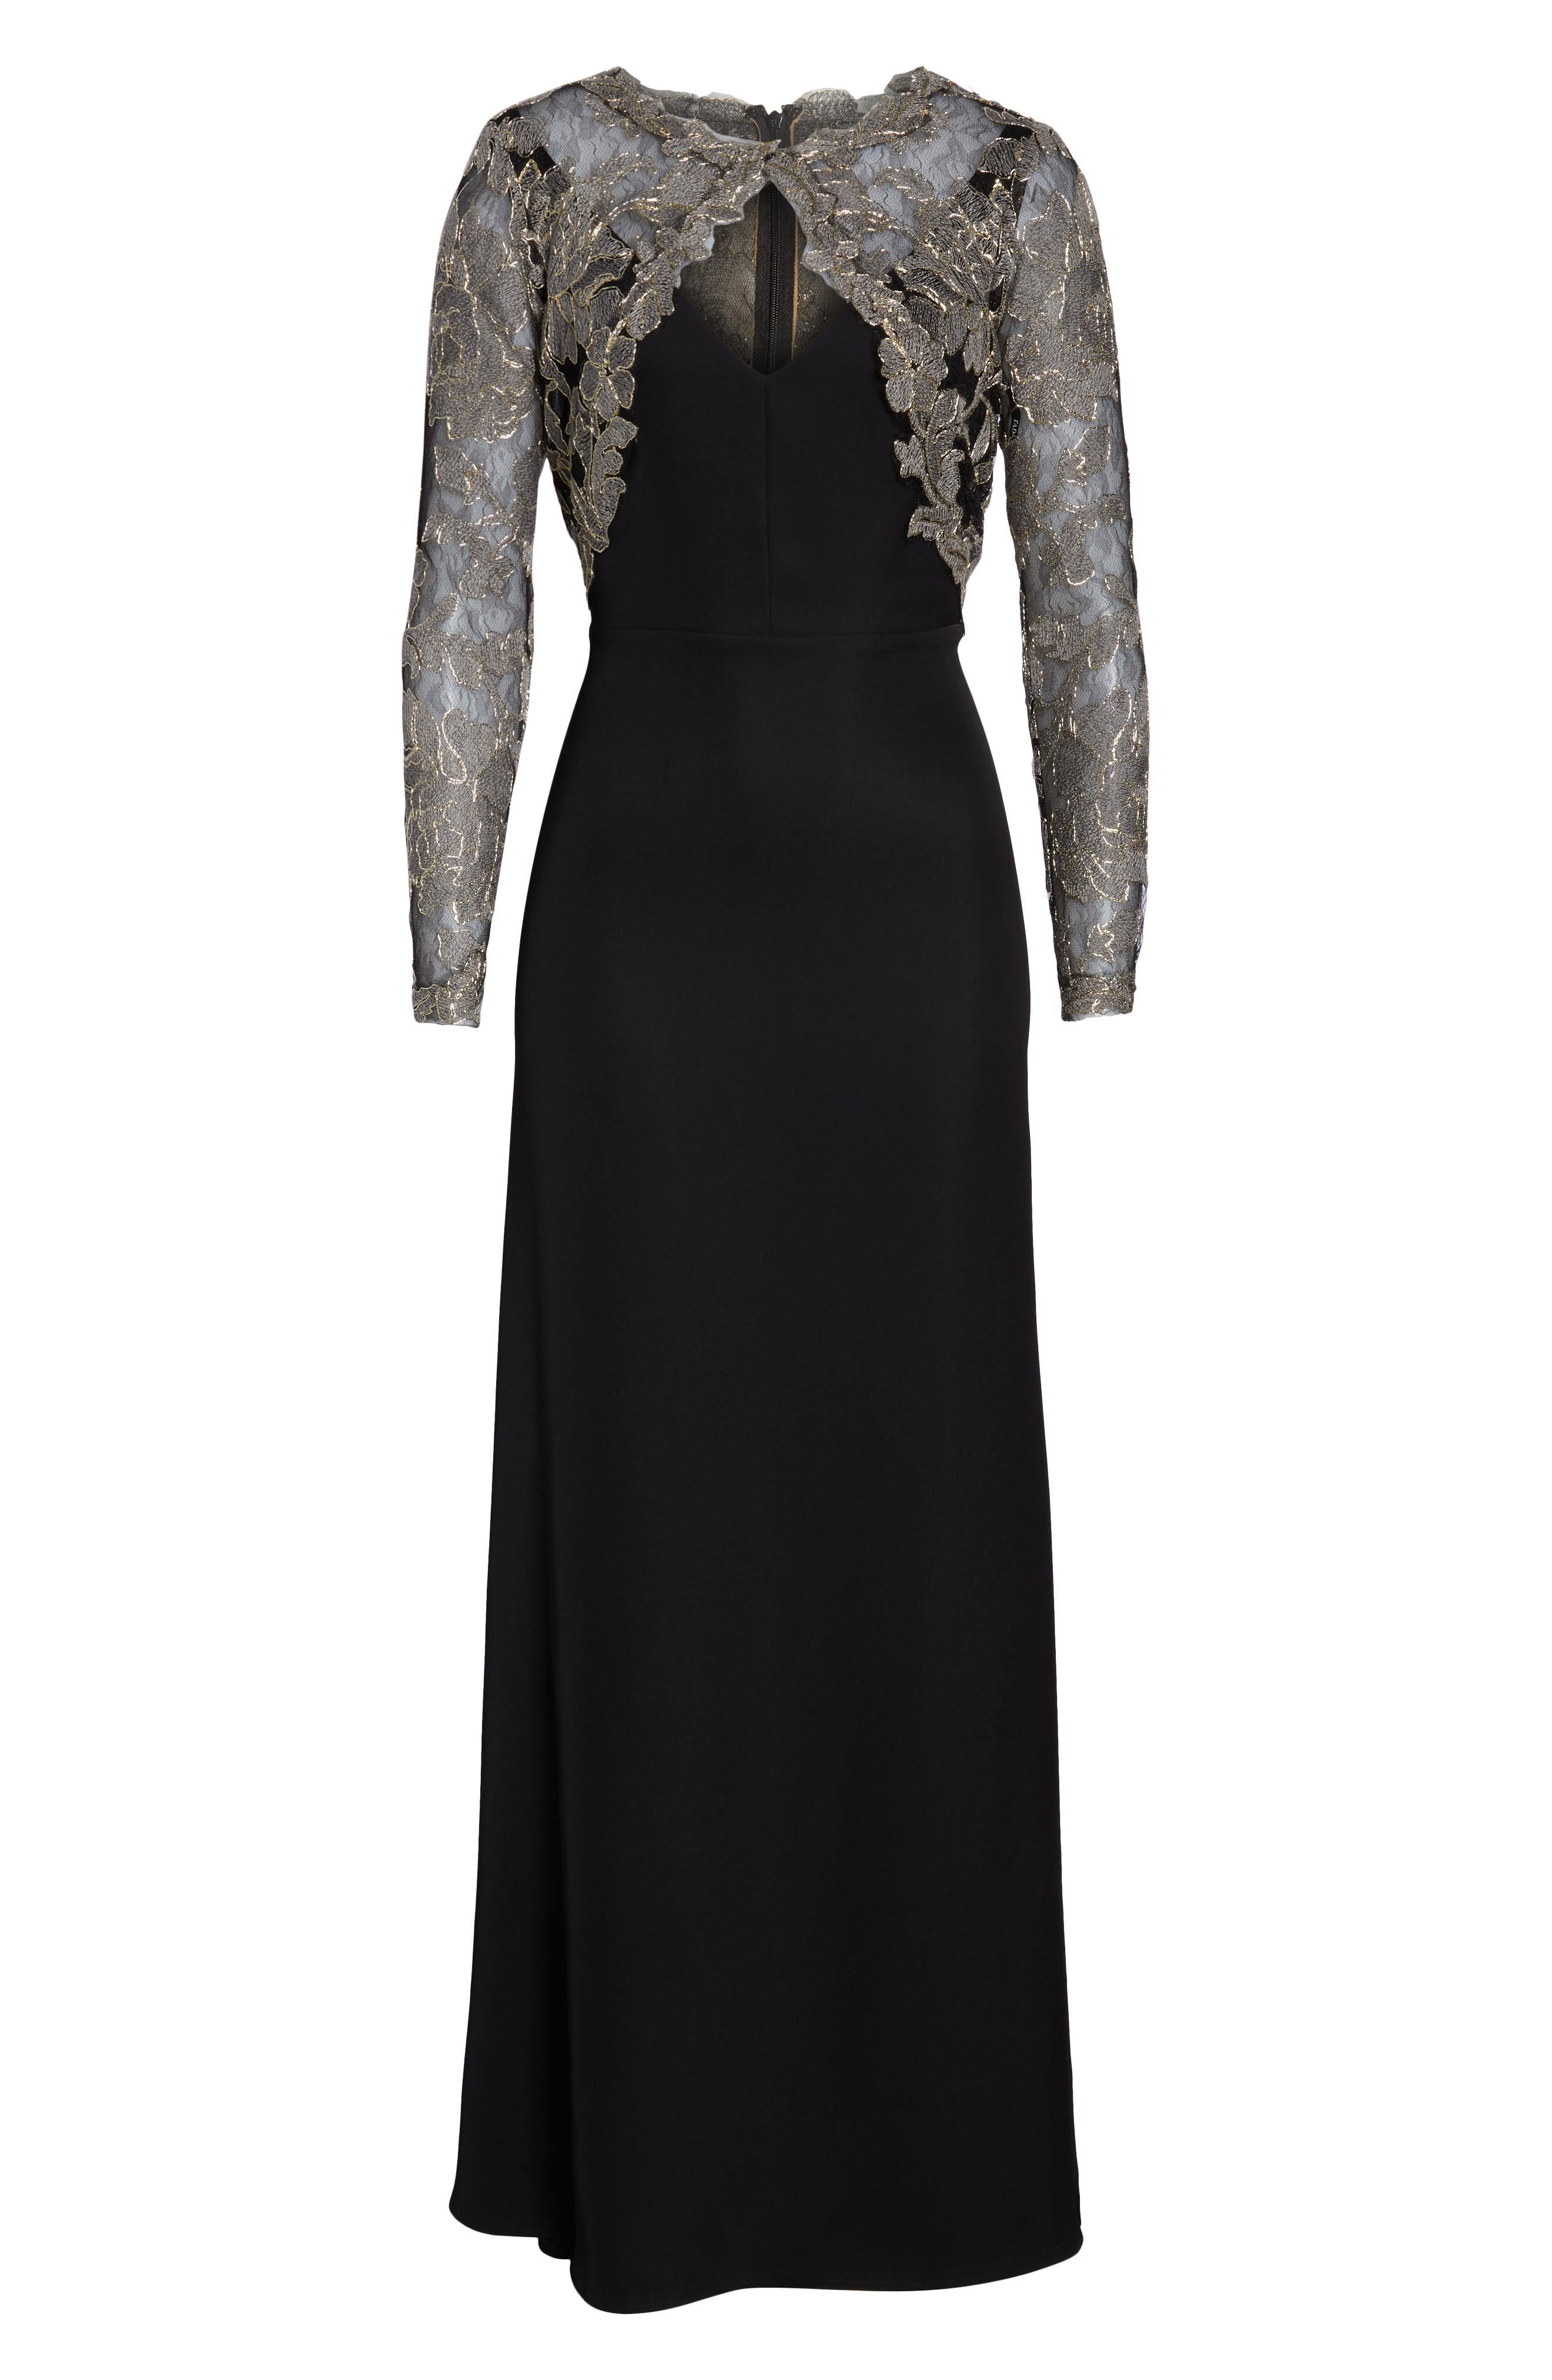 TADASHI SHOJI,                             Crepe & Embroidered Lace Gown,                             Alternate thumbnail 7, color,                             SMOKE PEARL/ BLACK